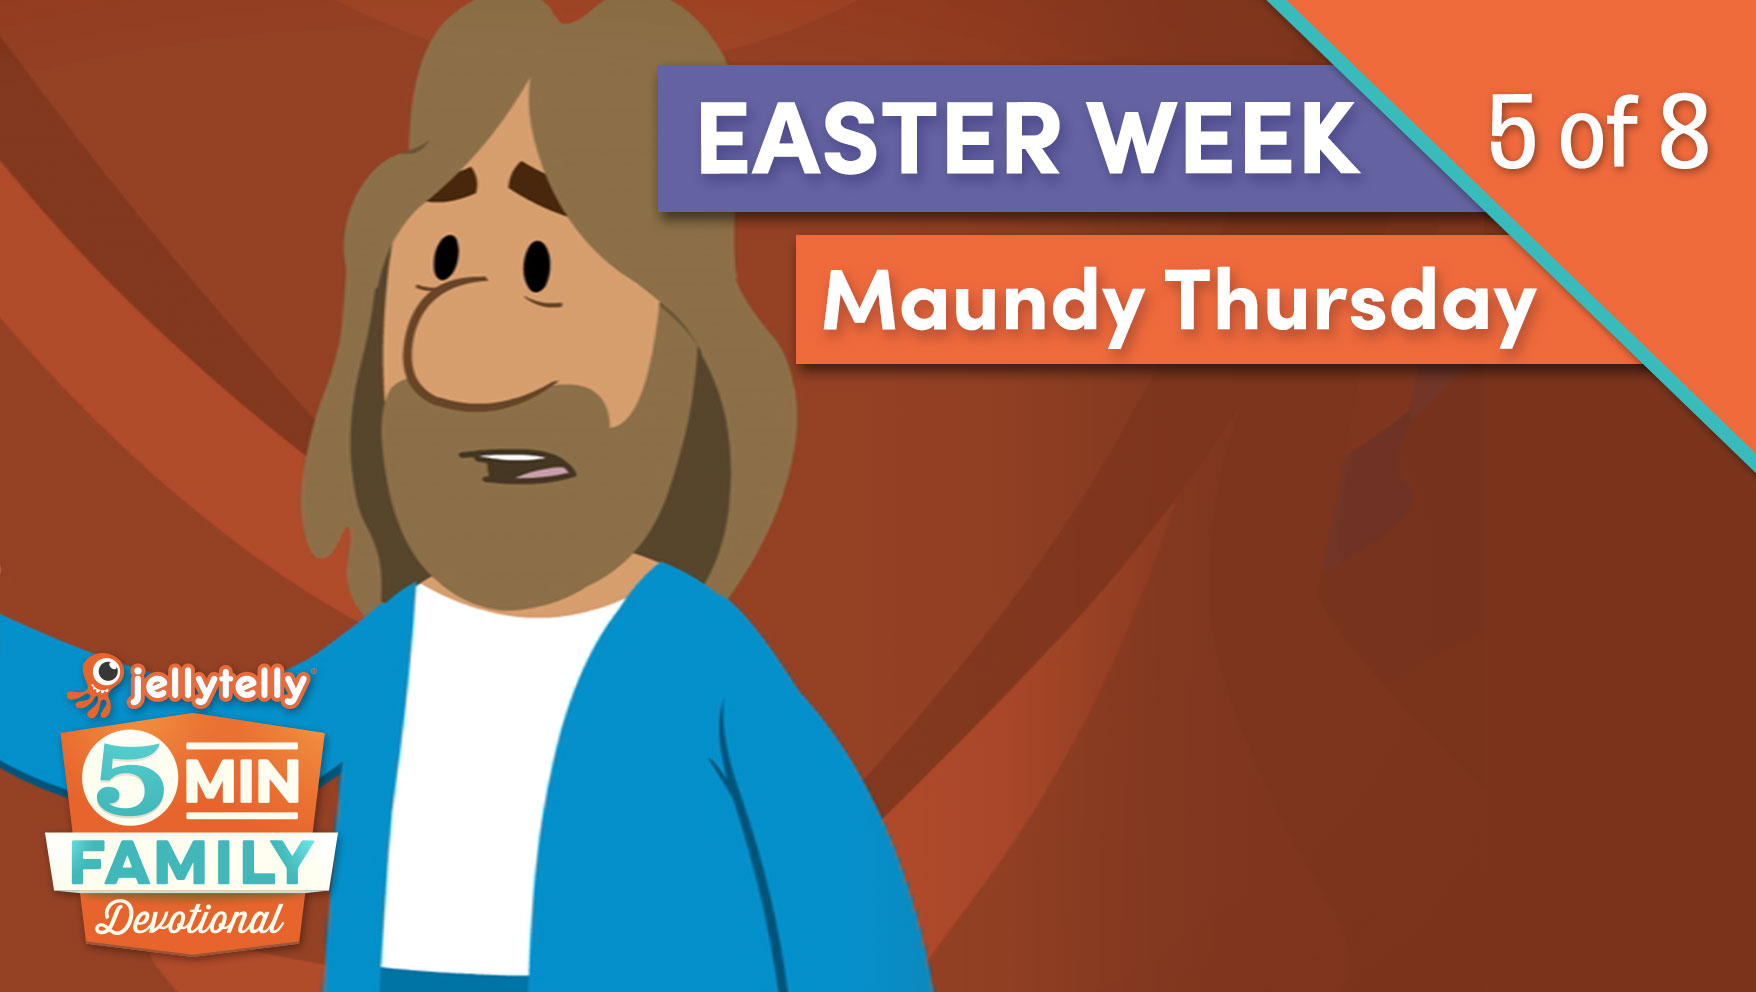 Maundy Thursday - Easter Week 5 Minute Family Devotional